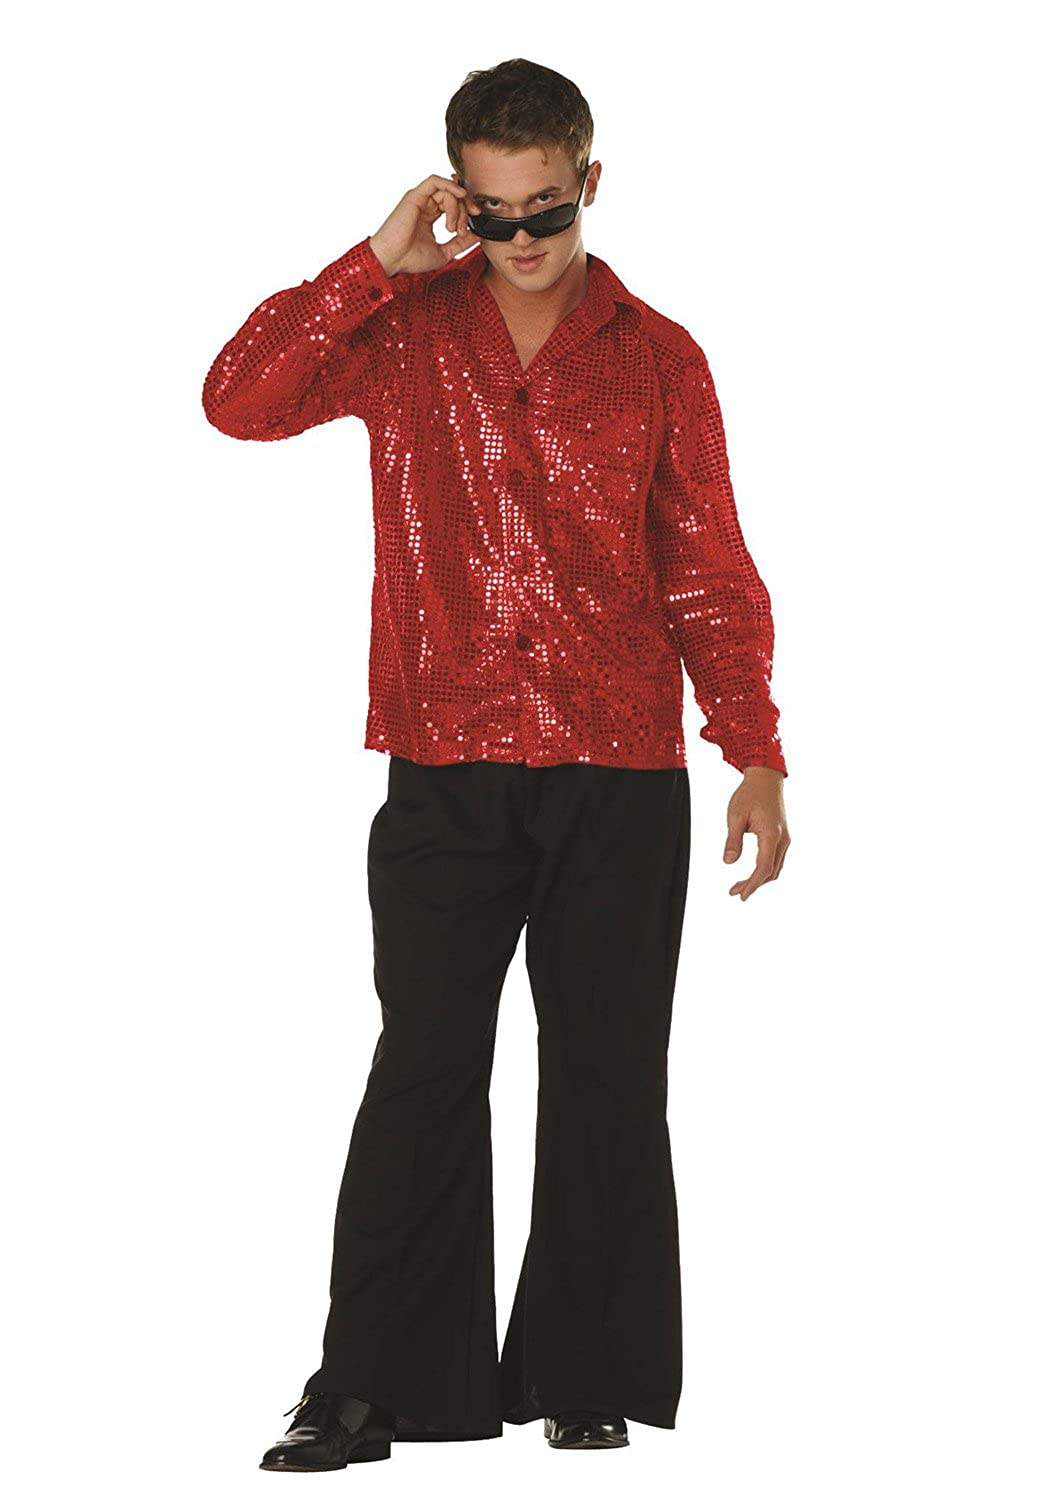 Disco Inferno Shirt With 4 Buttons RG Costumes